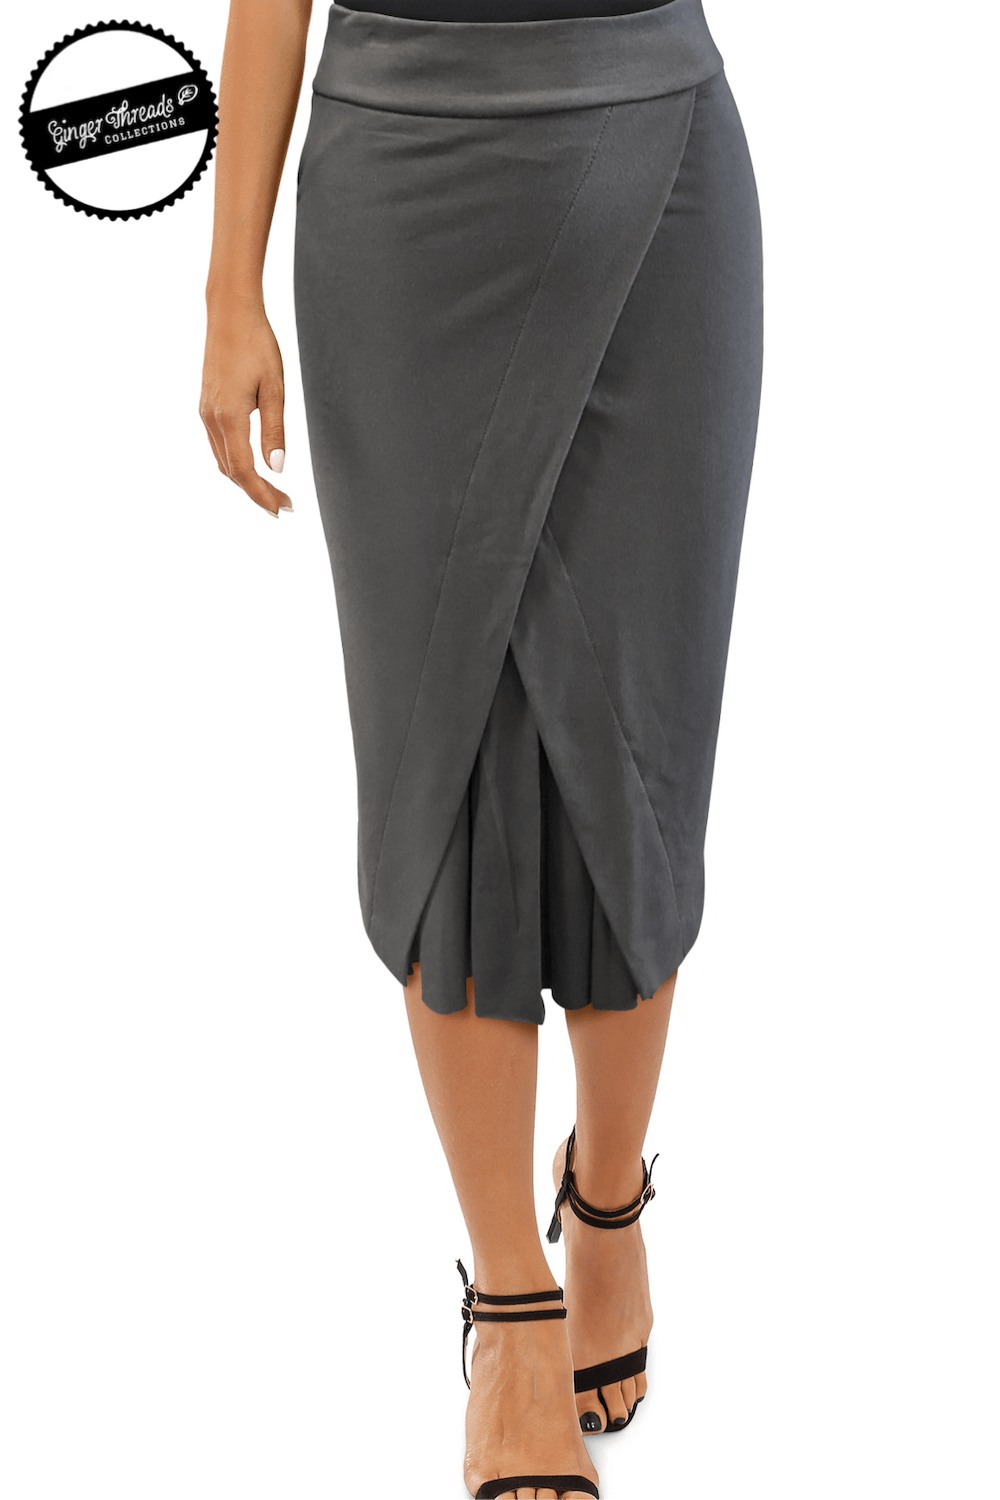 Ginger Threads Collections skirt Grey Bamboo Pencil Skirt